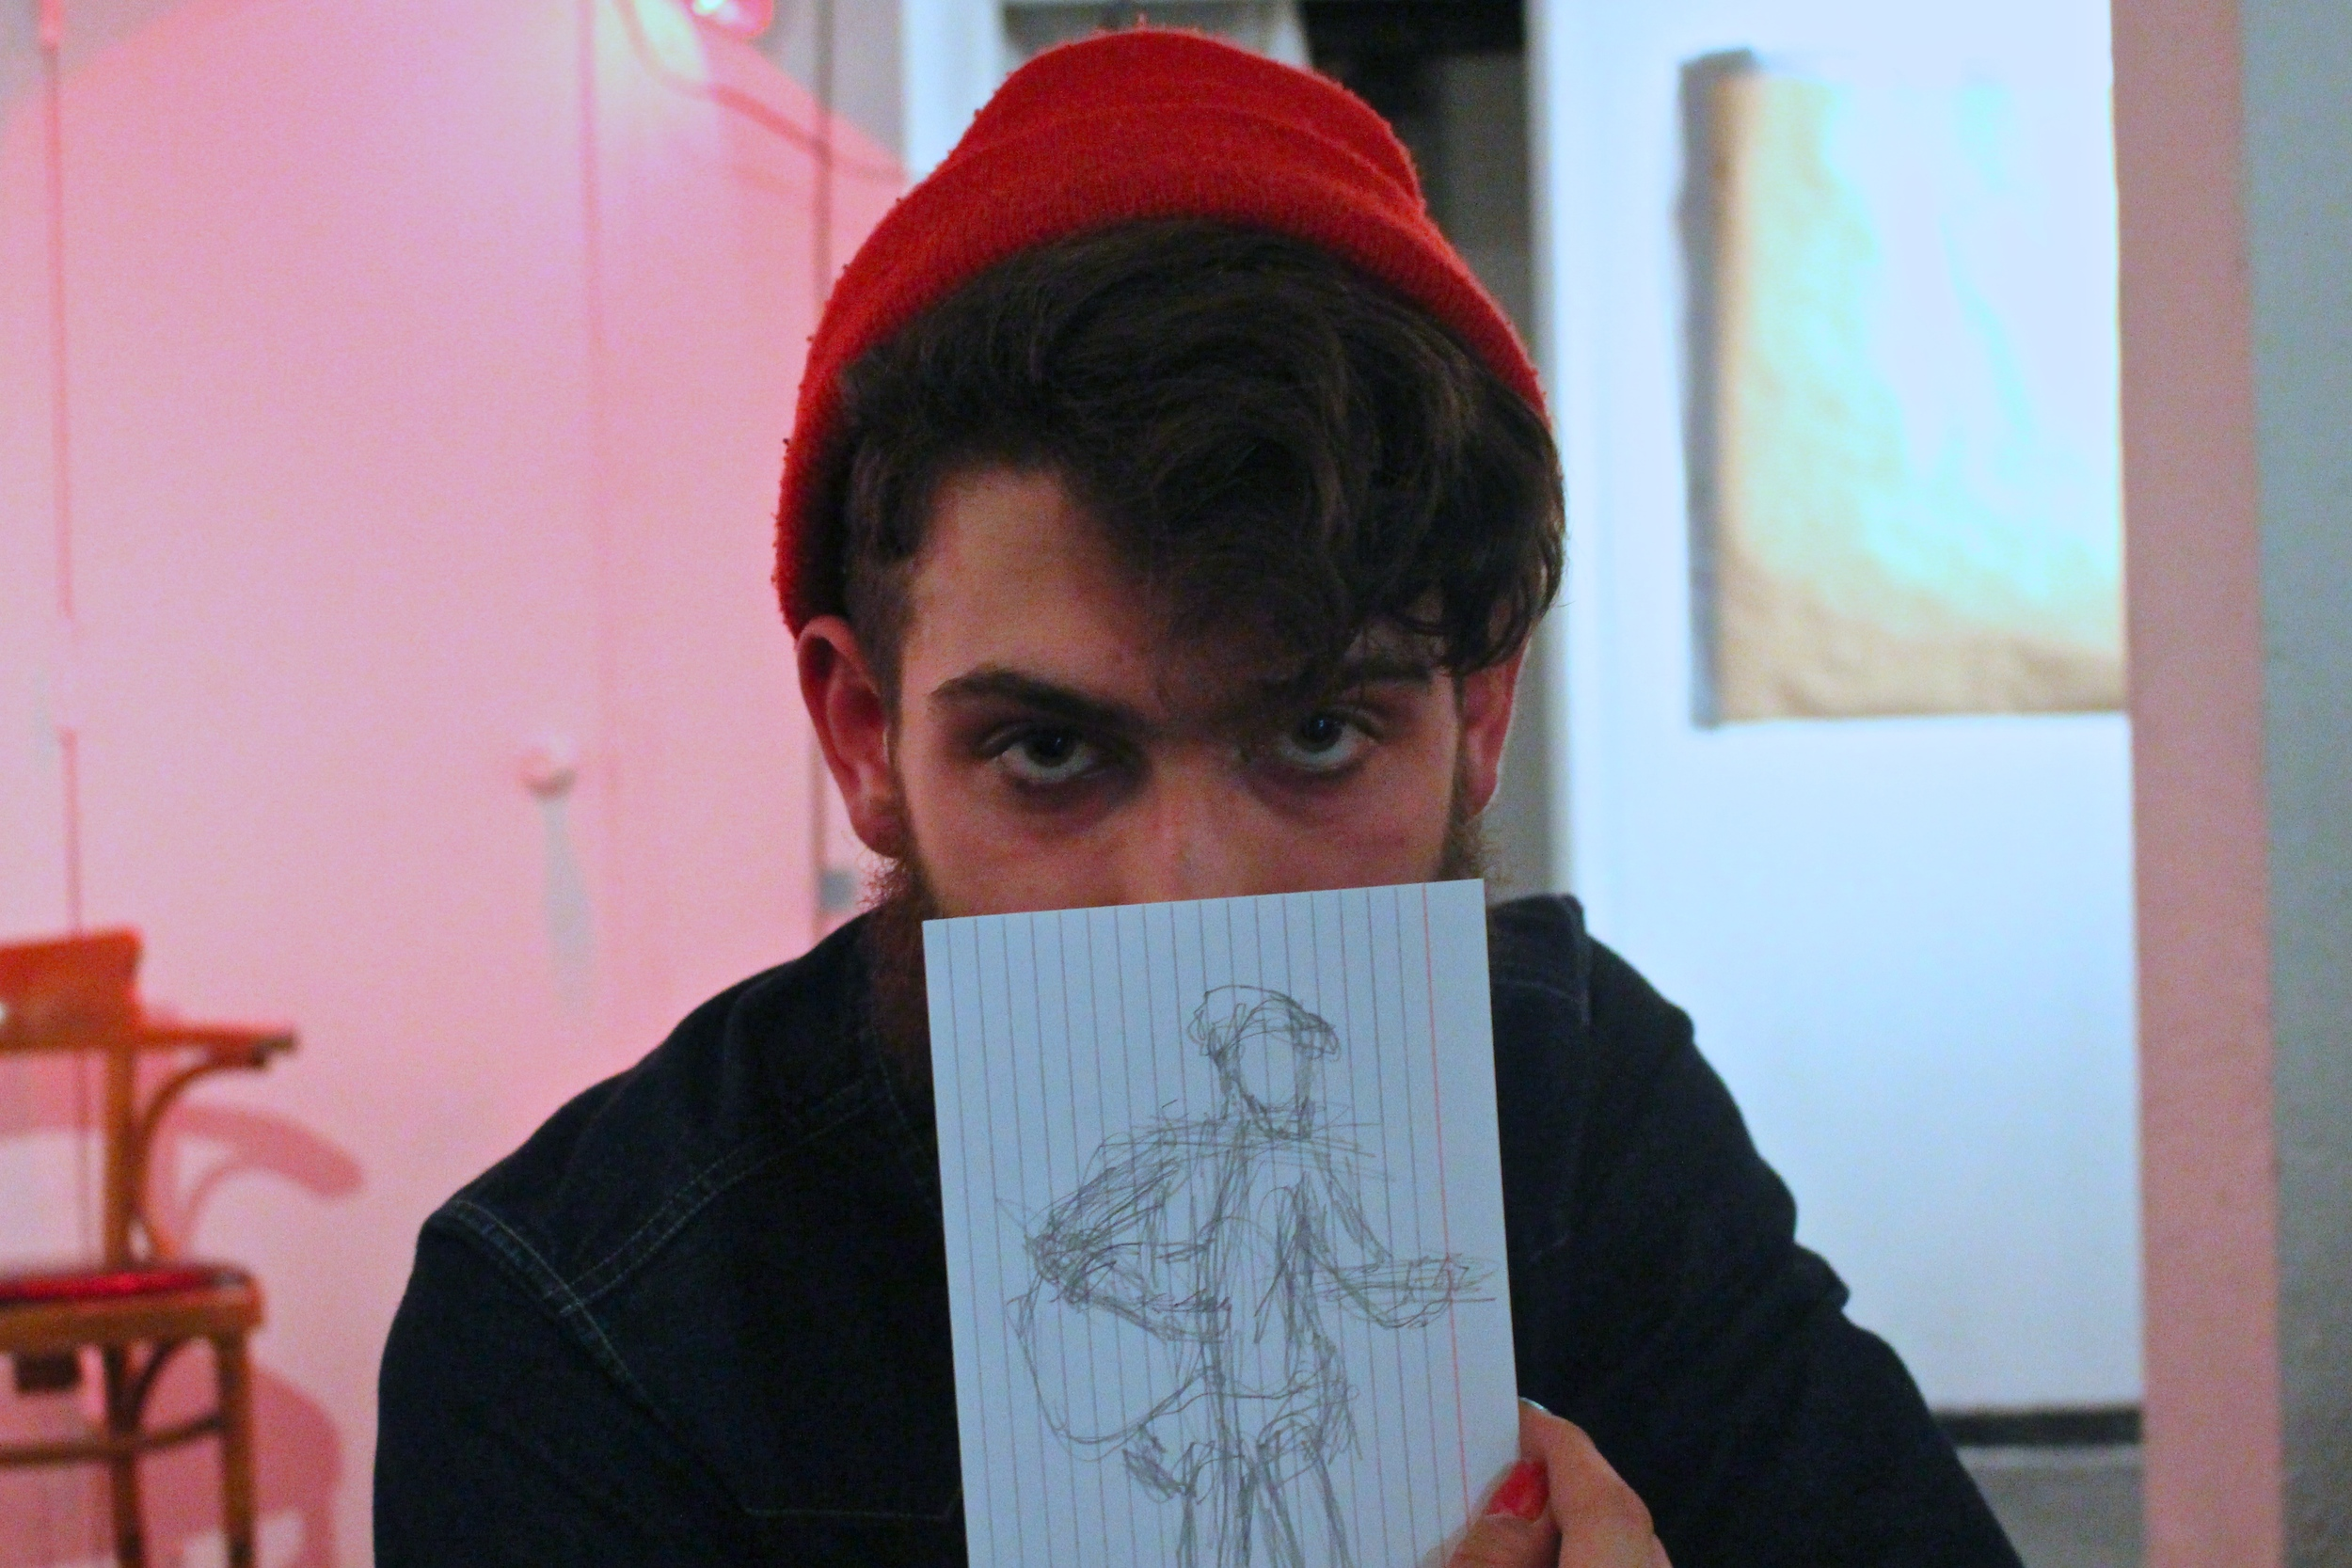 Guido Castellani '14 holds a sketch drawn during his performance